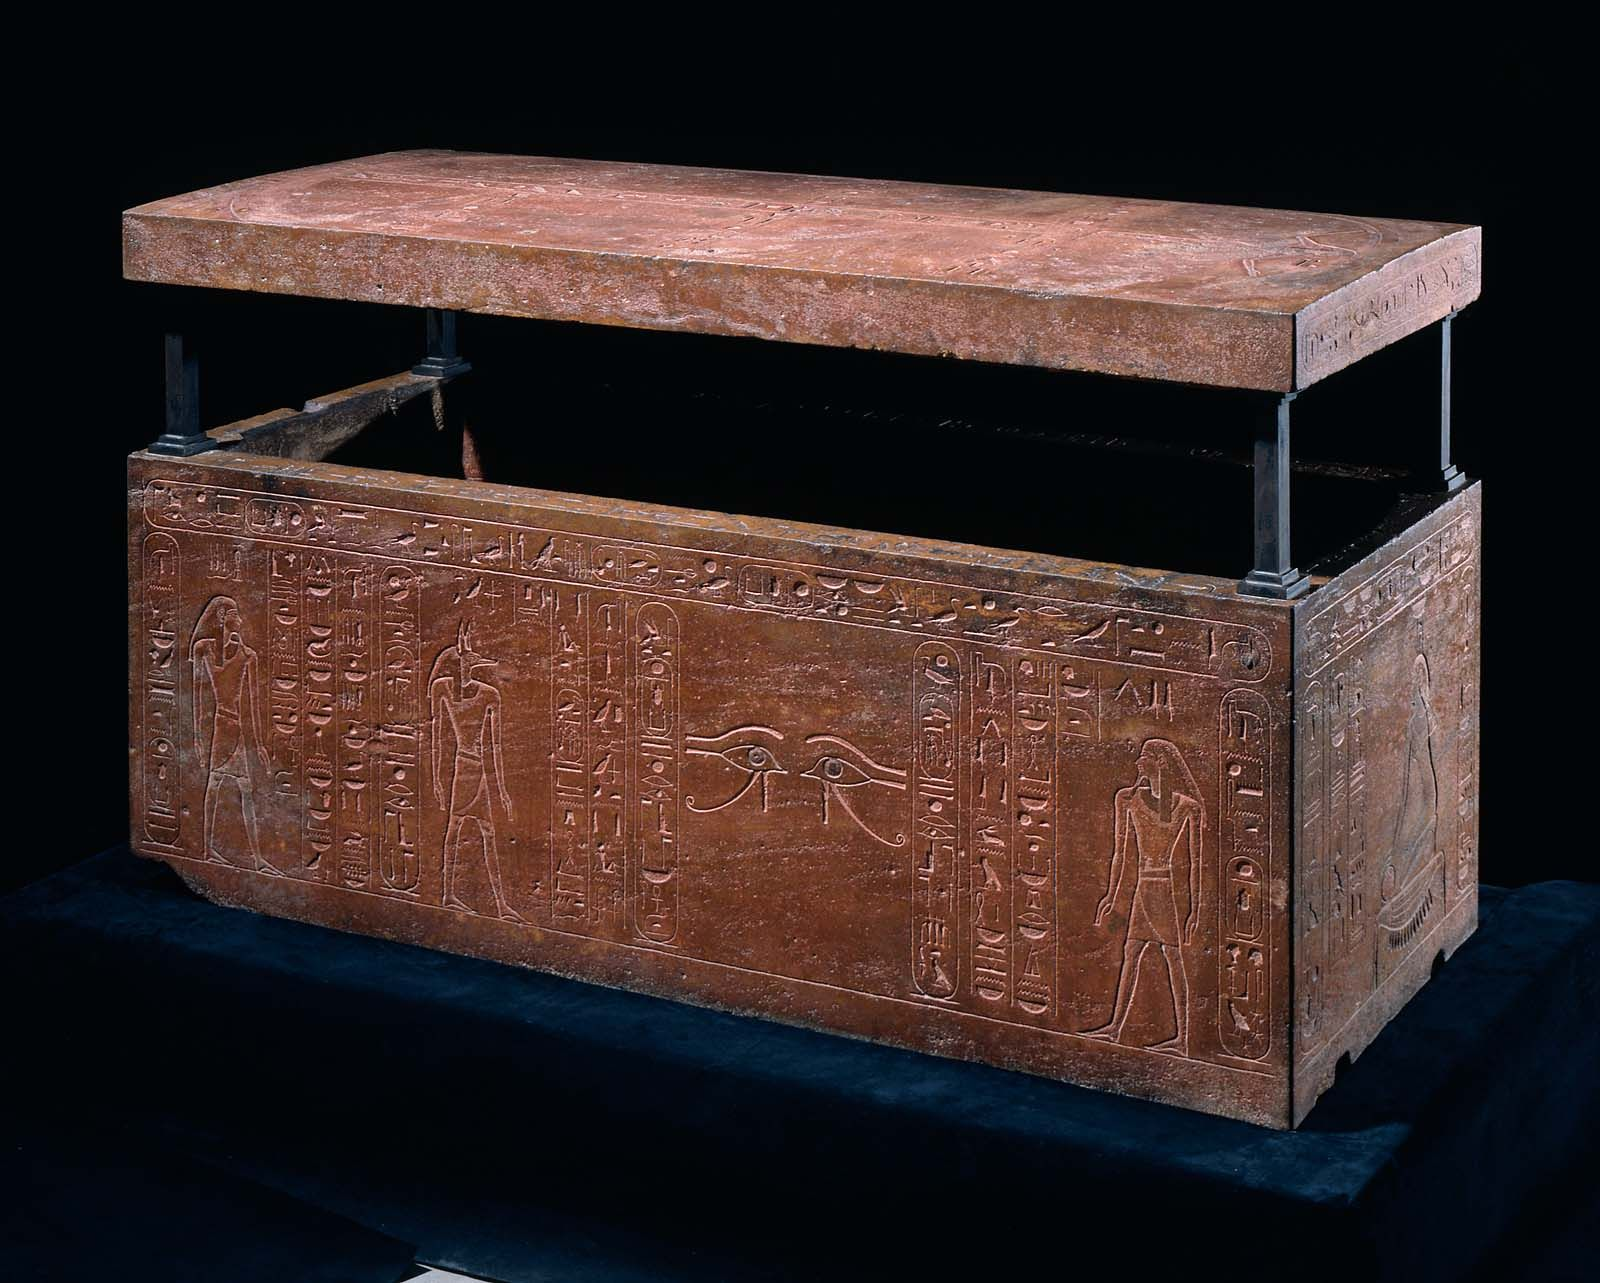 sarcophagus of queen hatshepsut recut for her father thutmose i box xviiith dynasty